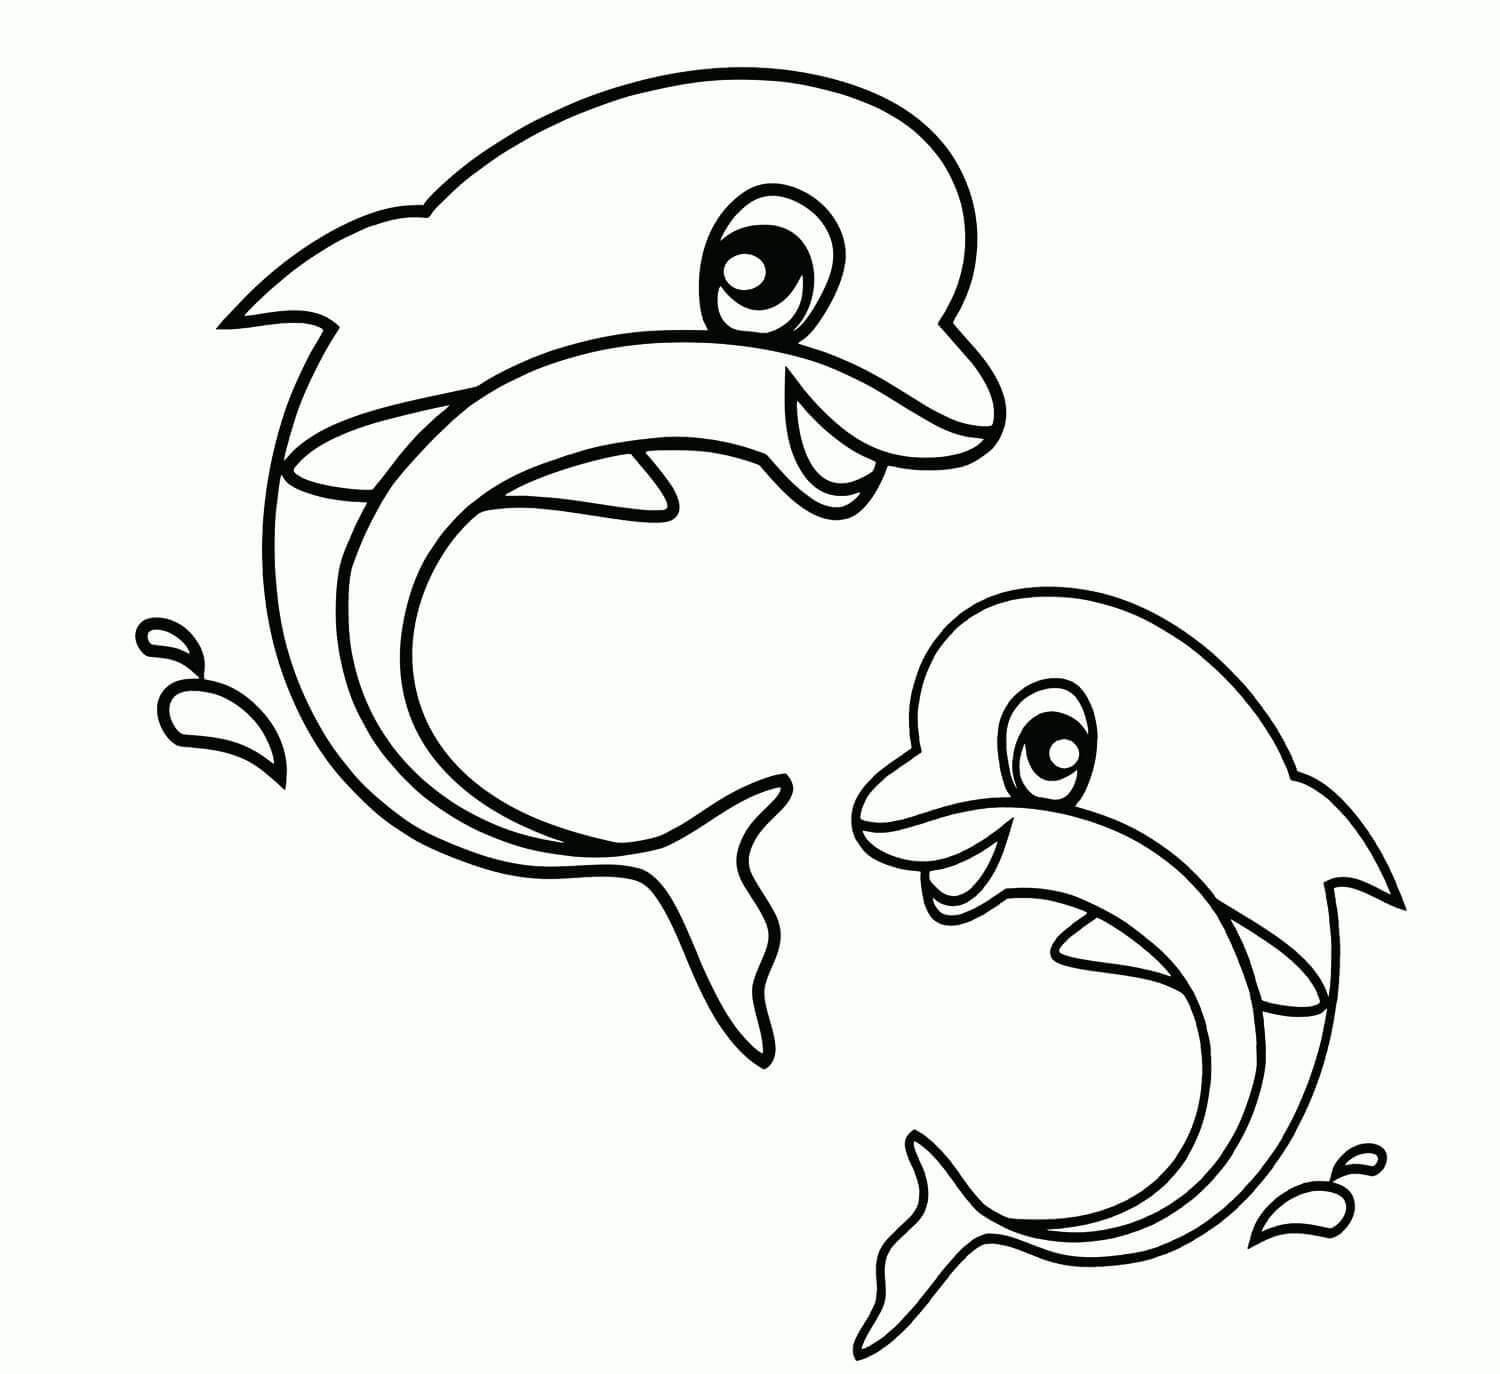 Nature and Wildlife-Animal Coloring Pages for Kids Dolphins of The Ocean